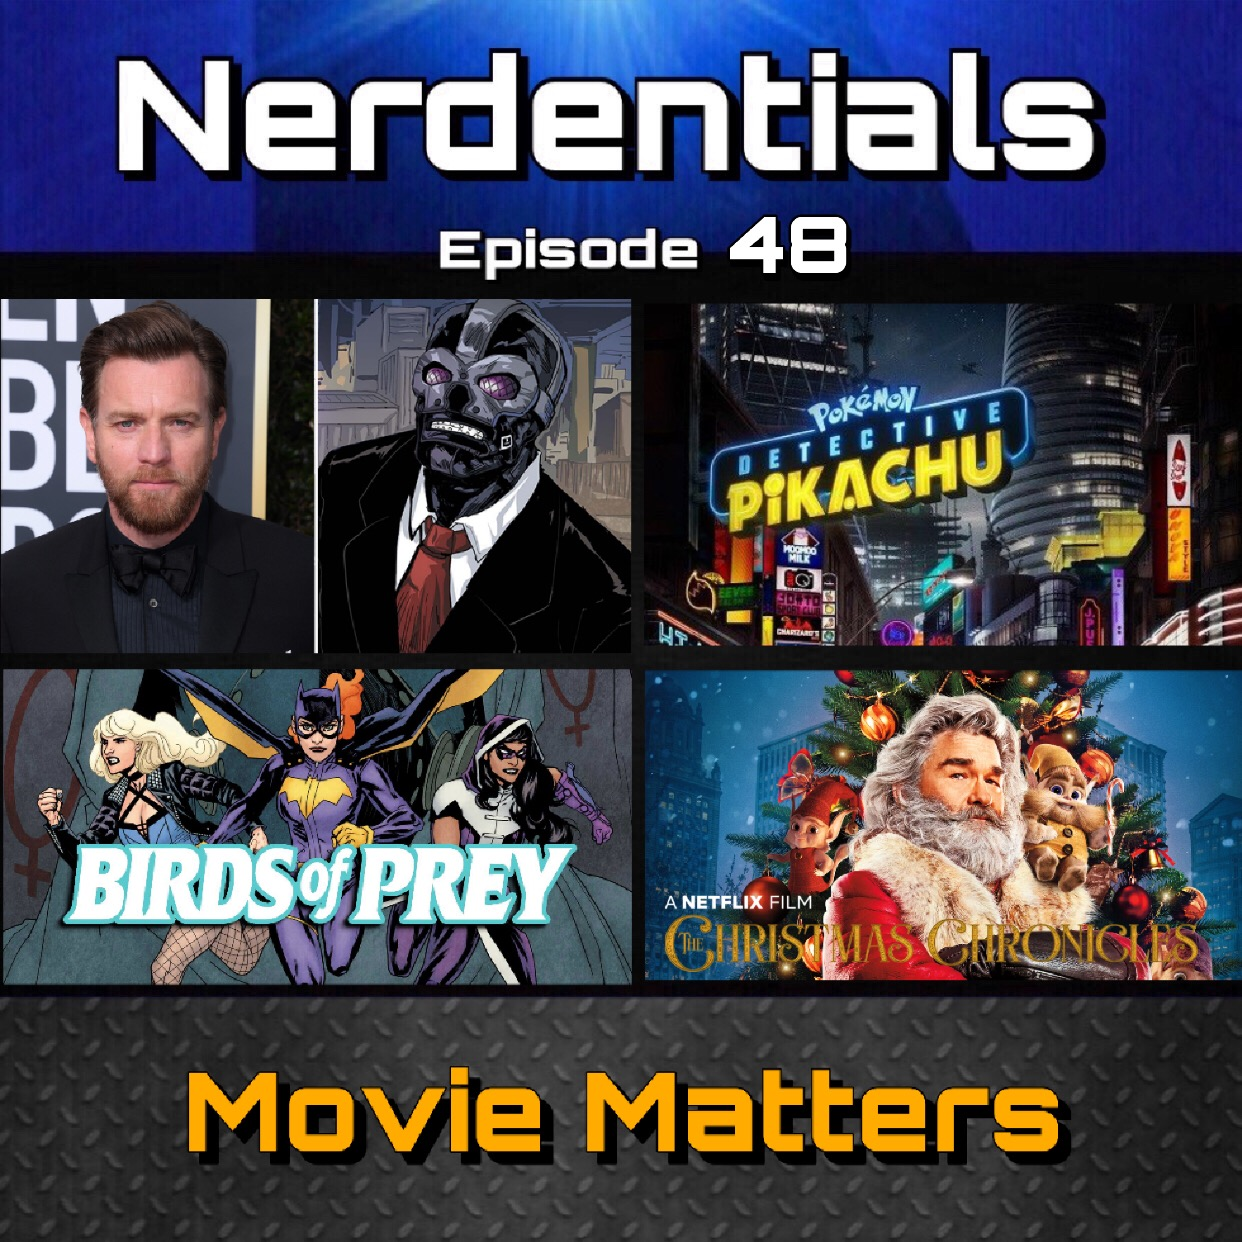 - Welcome to Nerdentials! Your weekly dose of the nerdy essentials. Covering Film, TV, Video Games and Comics.This week in Movie Matters, your hosts Joe, Nick and Lynn jump right into THE WEEKLY DOSE, with some movie news. Russo Bros. confirm longest marvel movie to date. Ewan McGregor cast in DC's newest film production of Birds of Prey as villain Black Mask. We talk about this being the first DC film to be rated R.Then Nick gives us his review on the Netflix Original movie The Christmas Chronicles.Finally the guys finish off the show with our thoughts on some movie trailers. Aquaman's Final Trailer, Pokemon: Detective Pikachu and Disney's